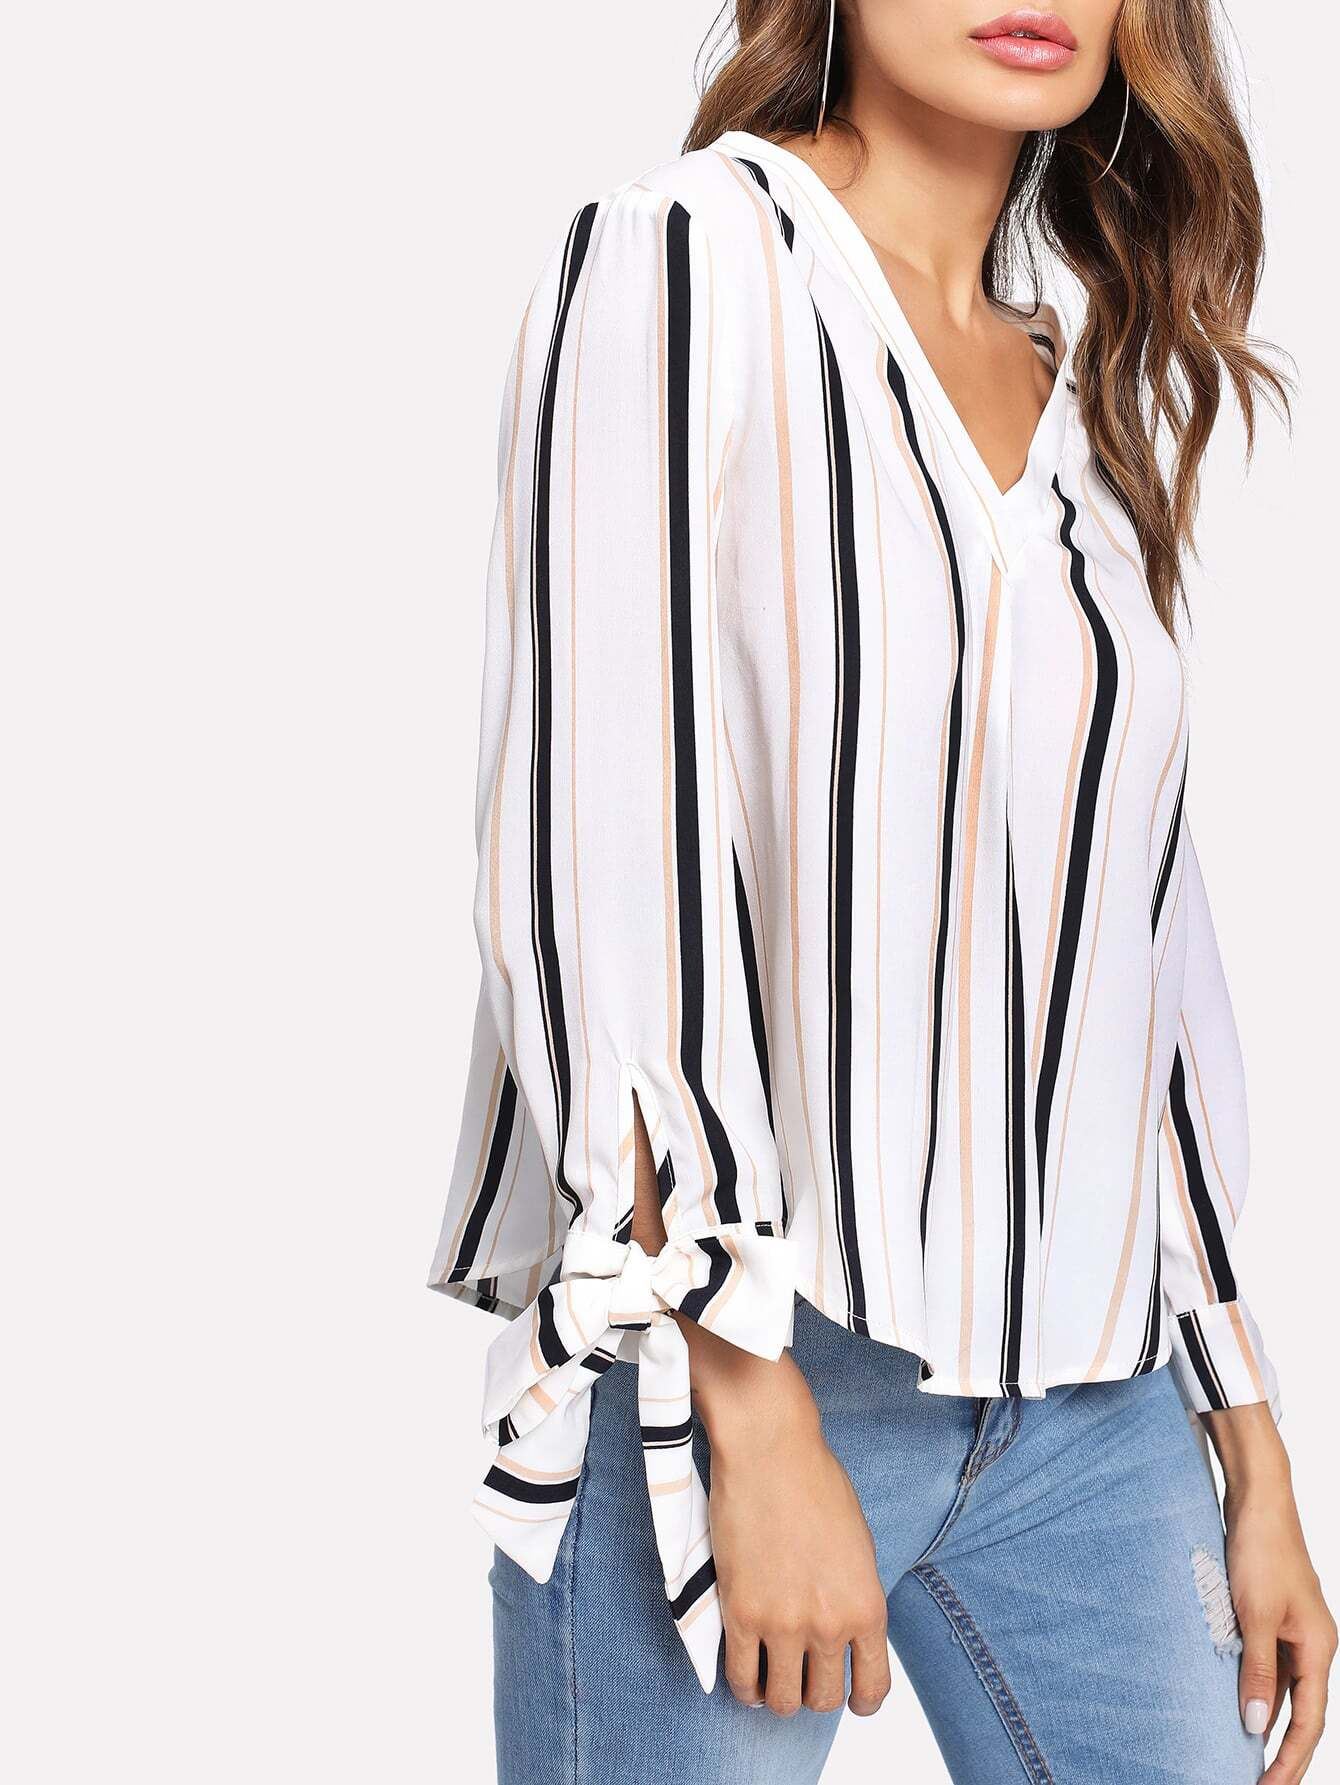 Bow Tied Cuff Vertical Striped Blouse elastic trumpet cuff bow tied blouse